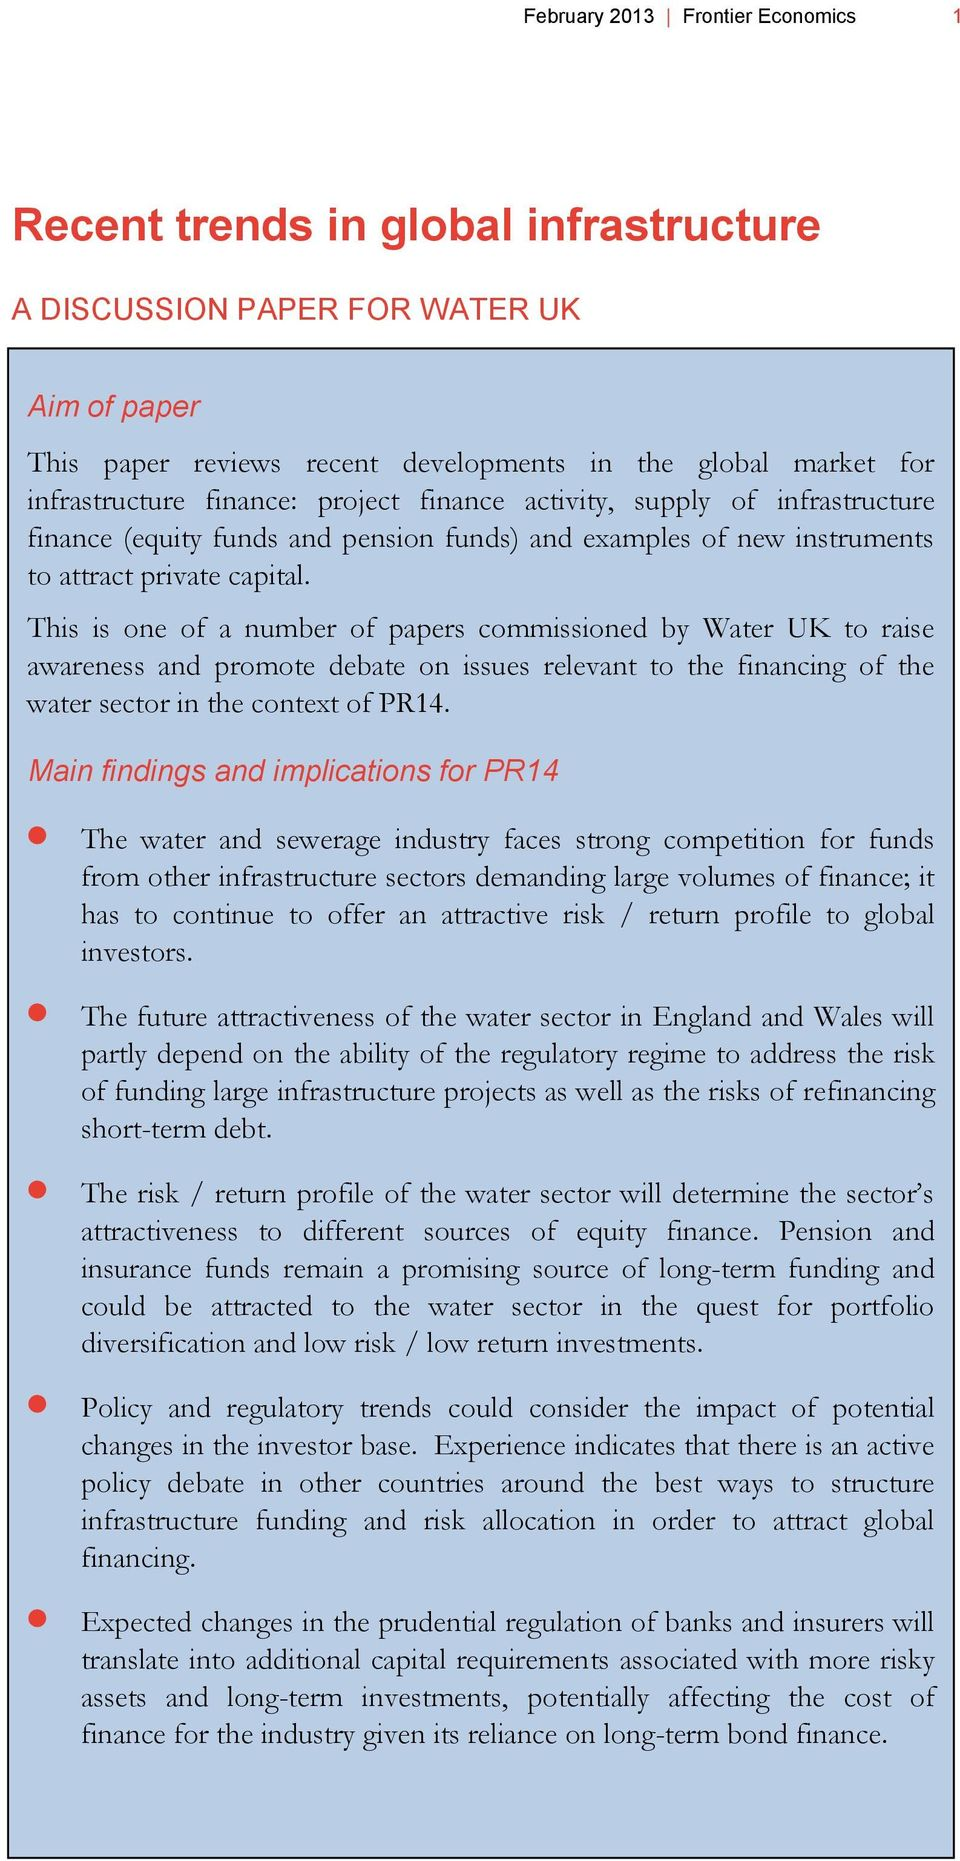 This is one of a number of papers commissioned by Water UK to raise awareness and promote debate on issues relevant to the financing of the water sector in the context of PR14.